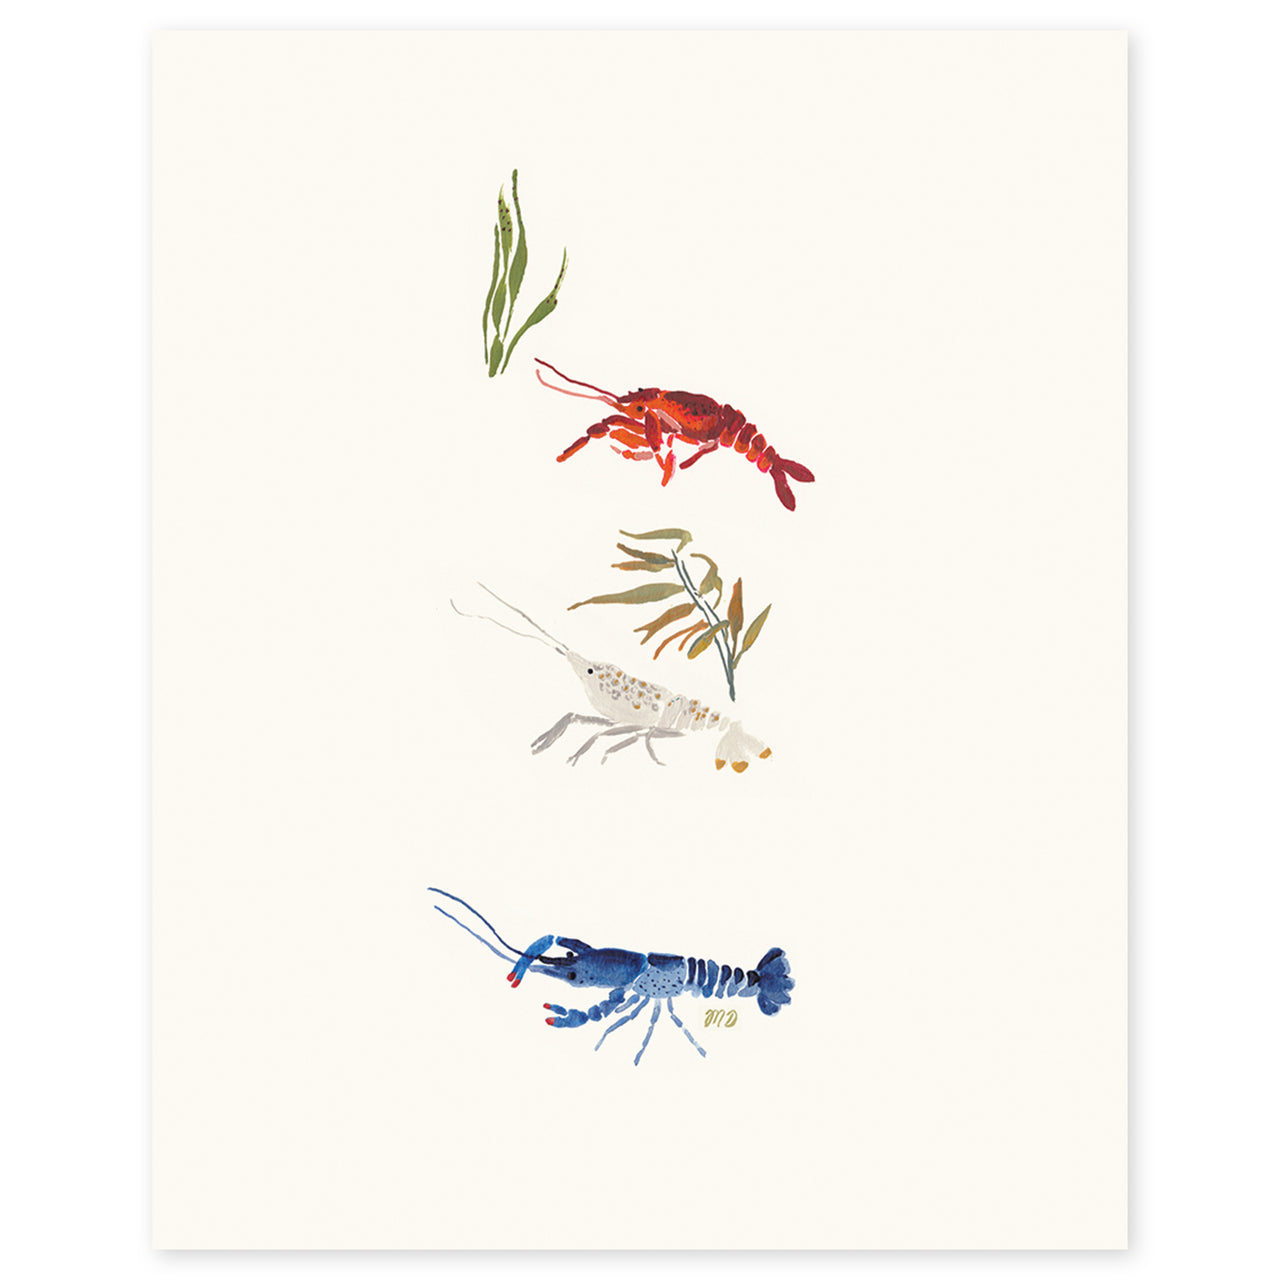 Red, White, and Blue Crayfish by Monica Dorazewski